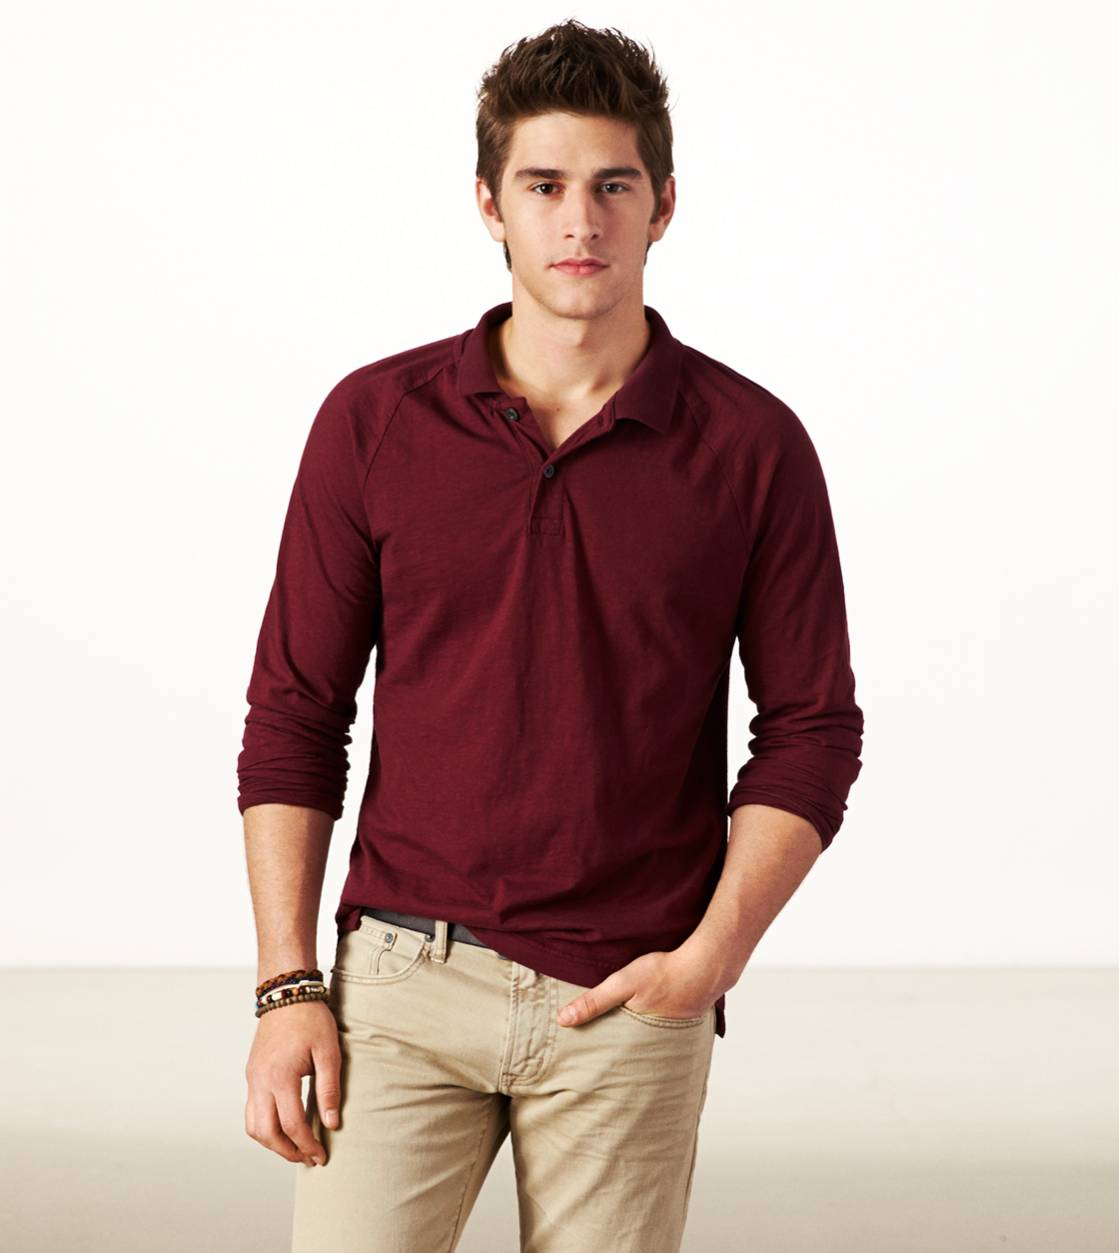 Merlot AE Long Sleeve Polo